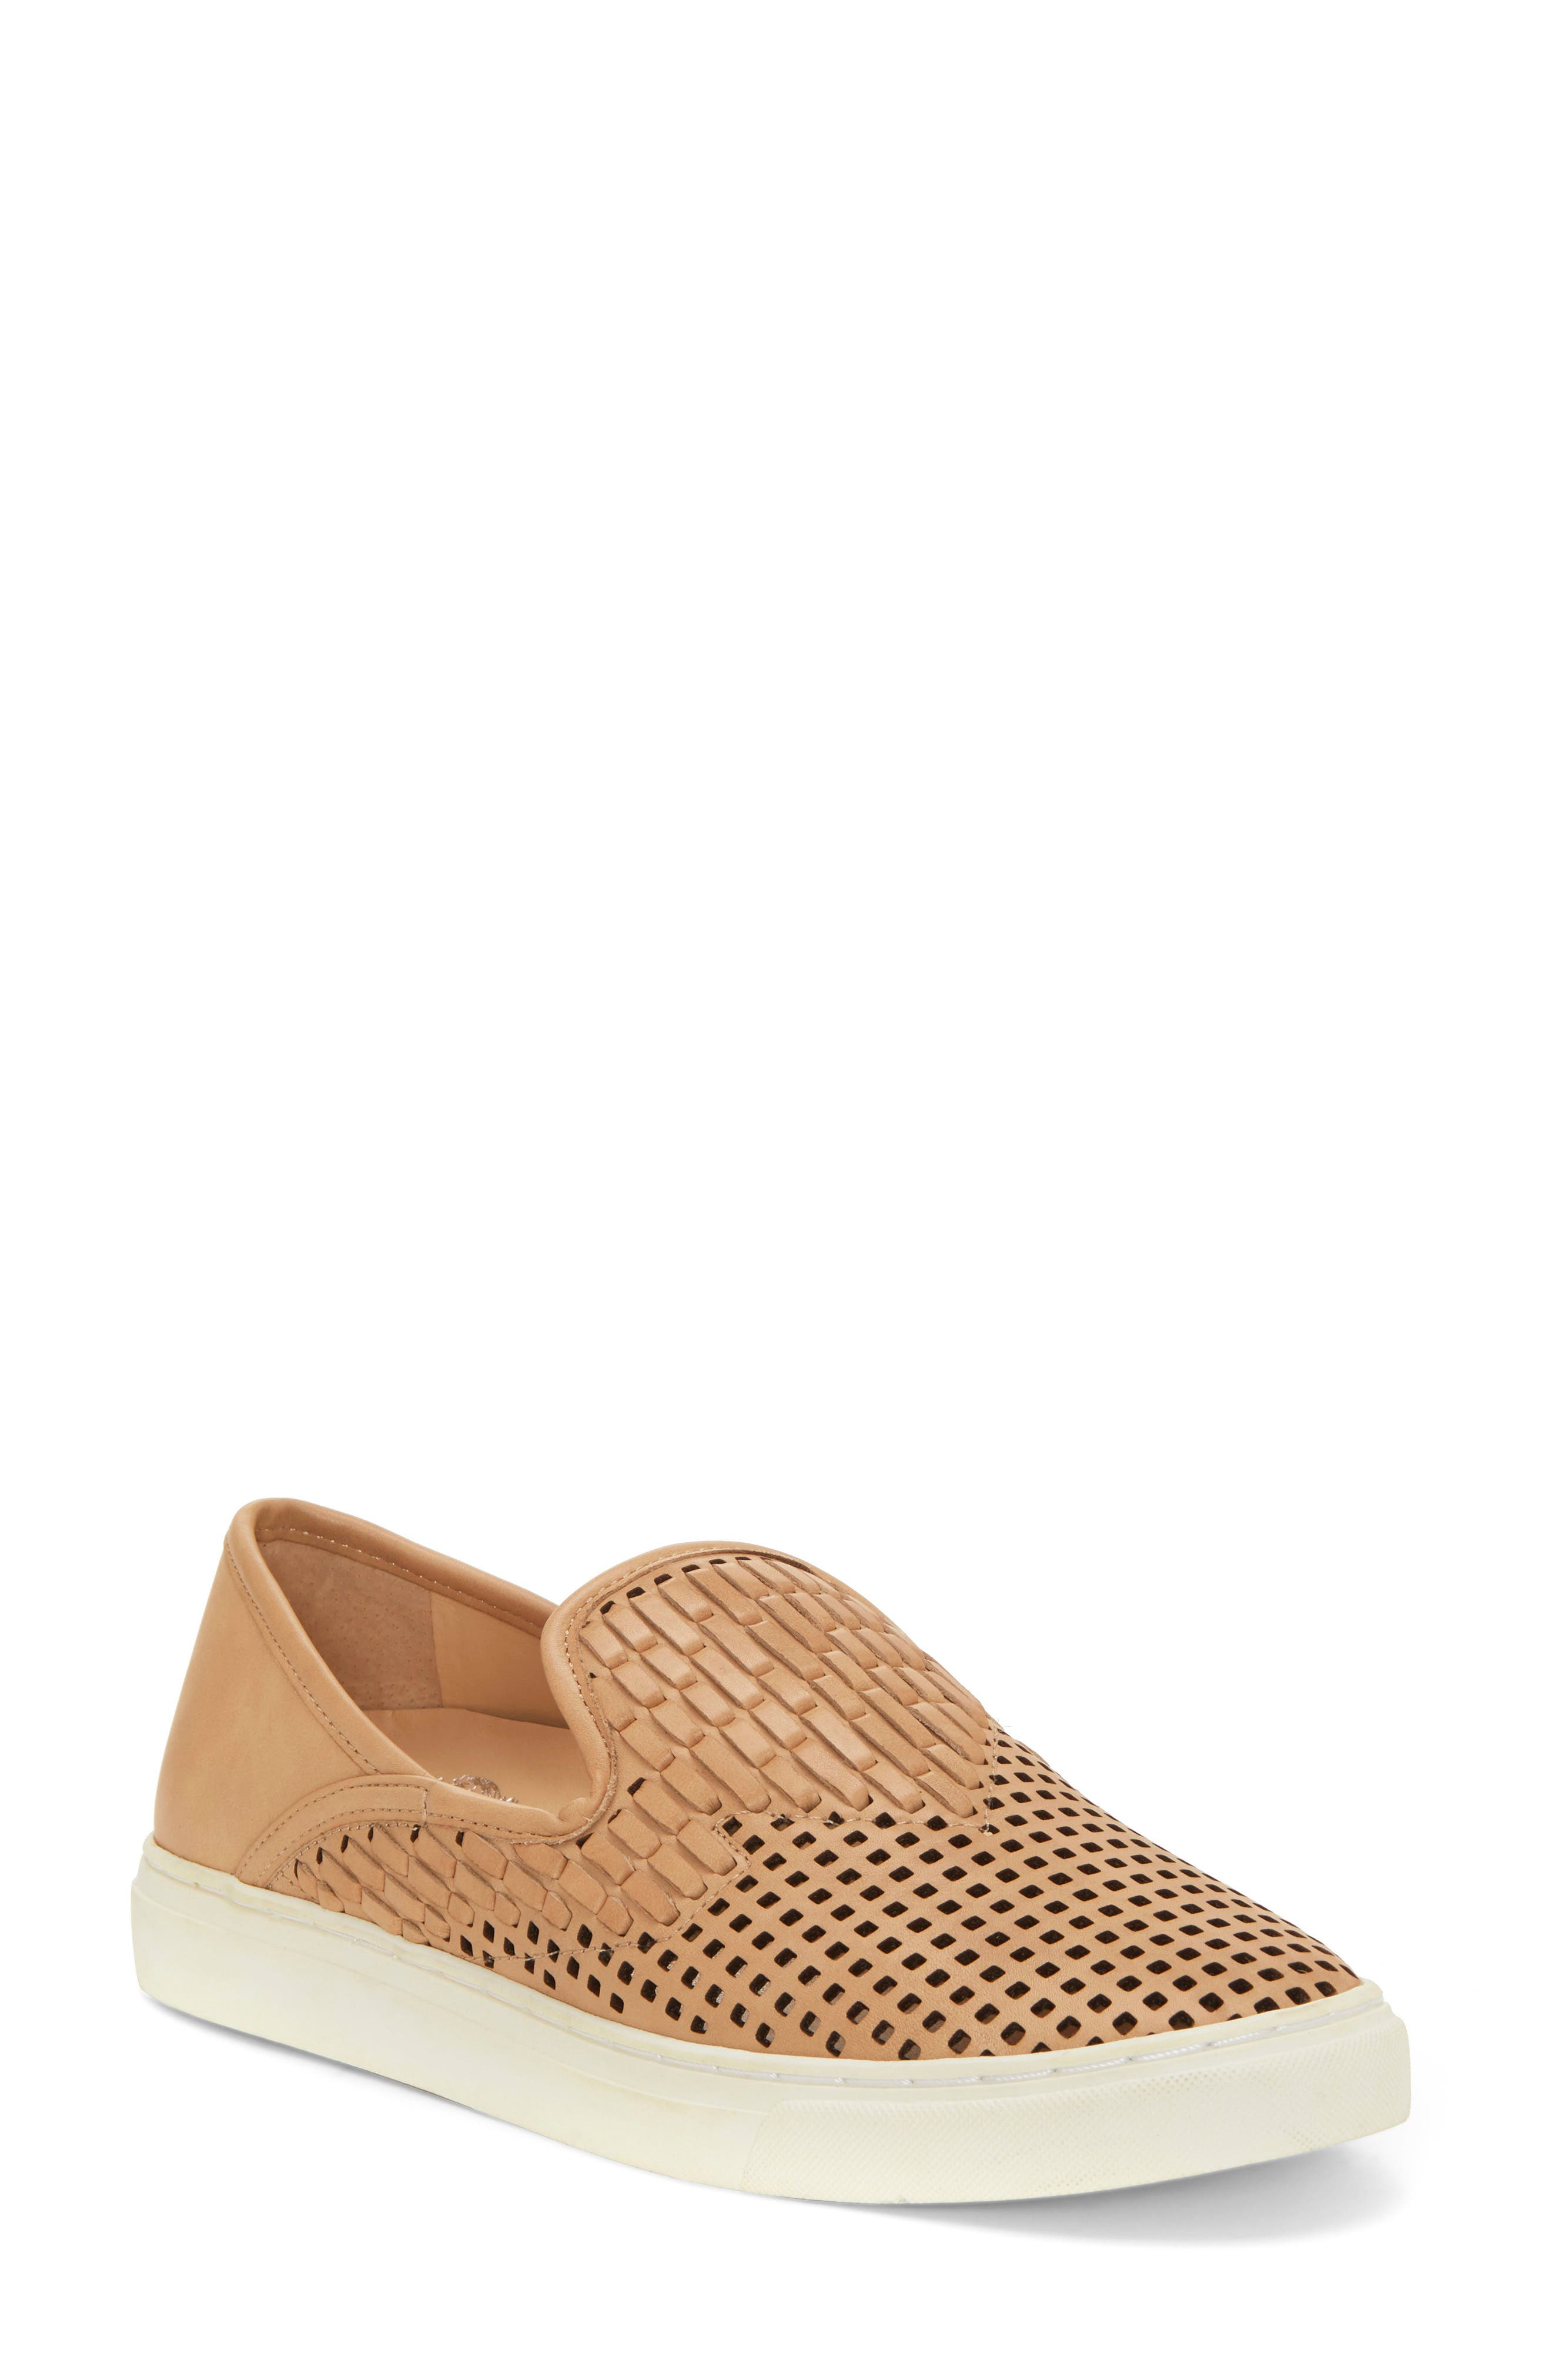 VINCE CAMUTO Bristie Sneaker, Main, color, NATURAL LEATHER